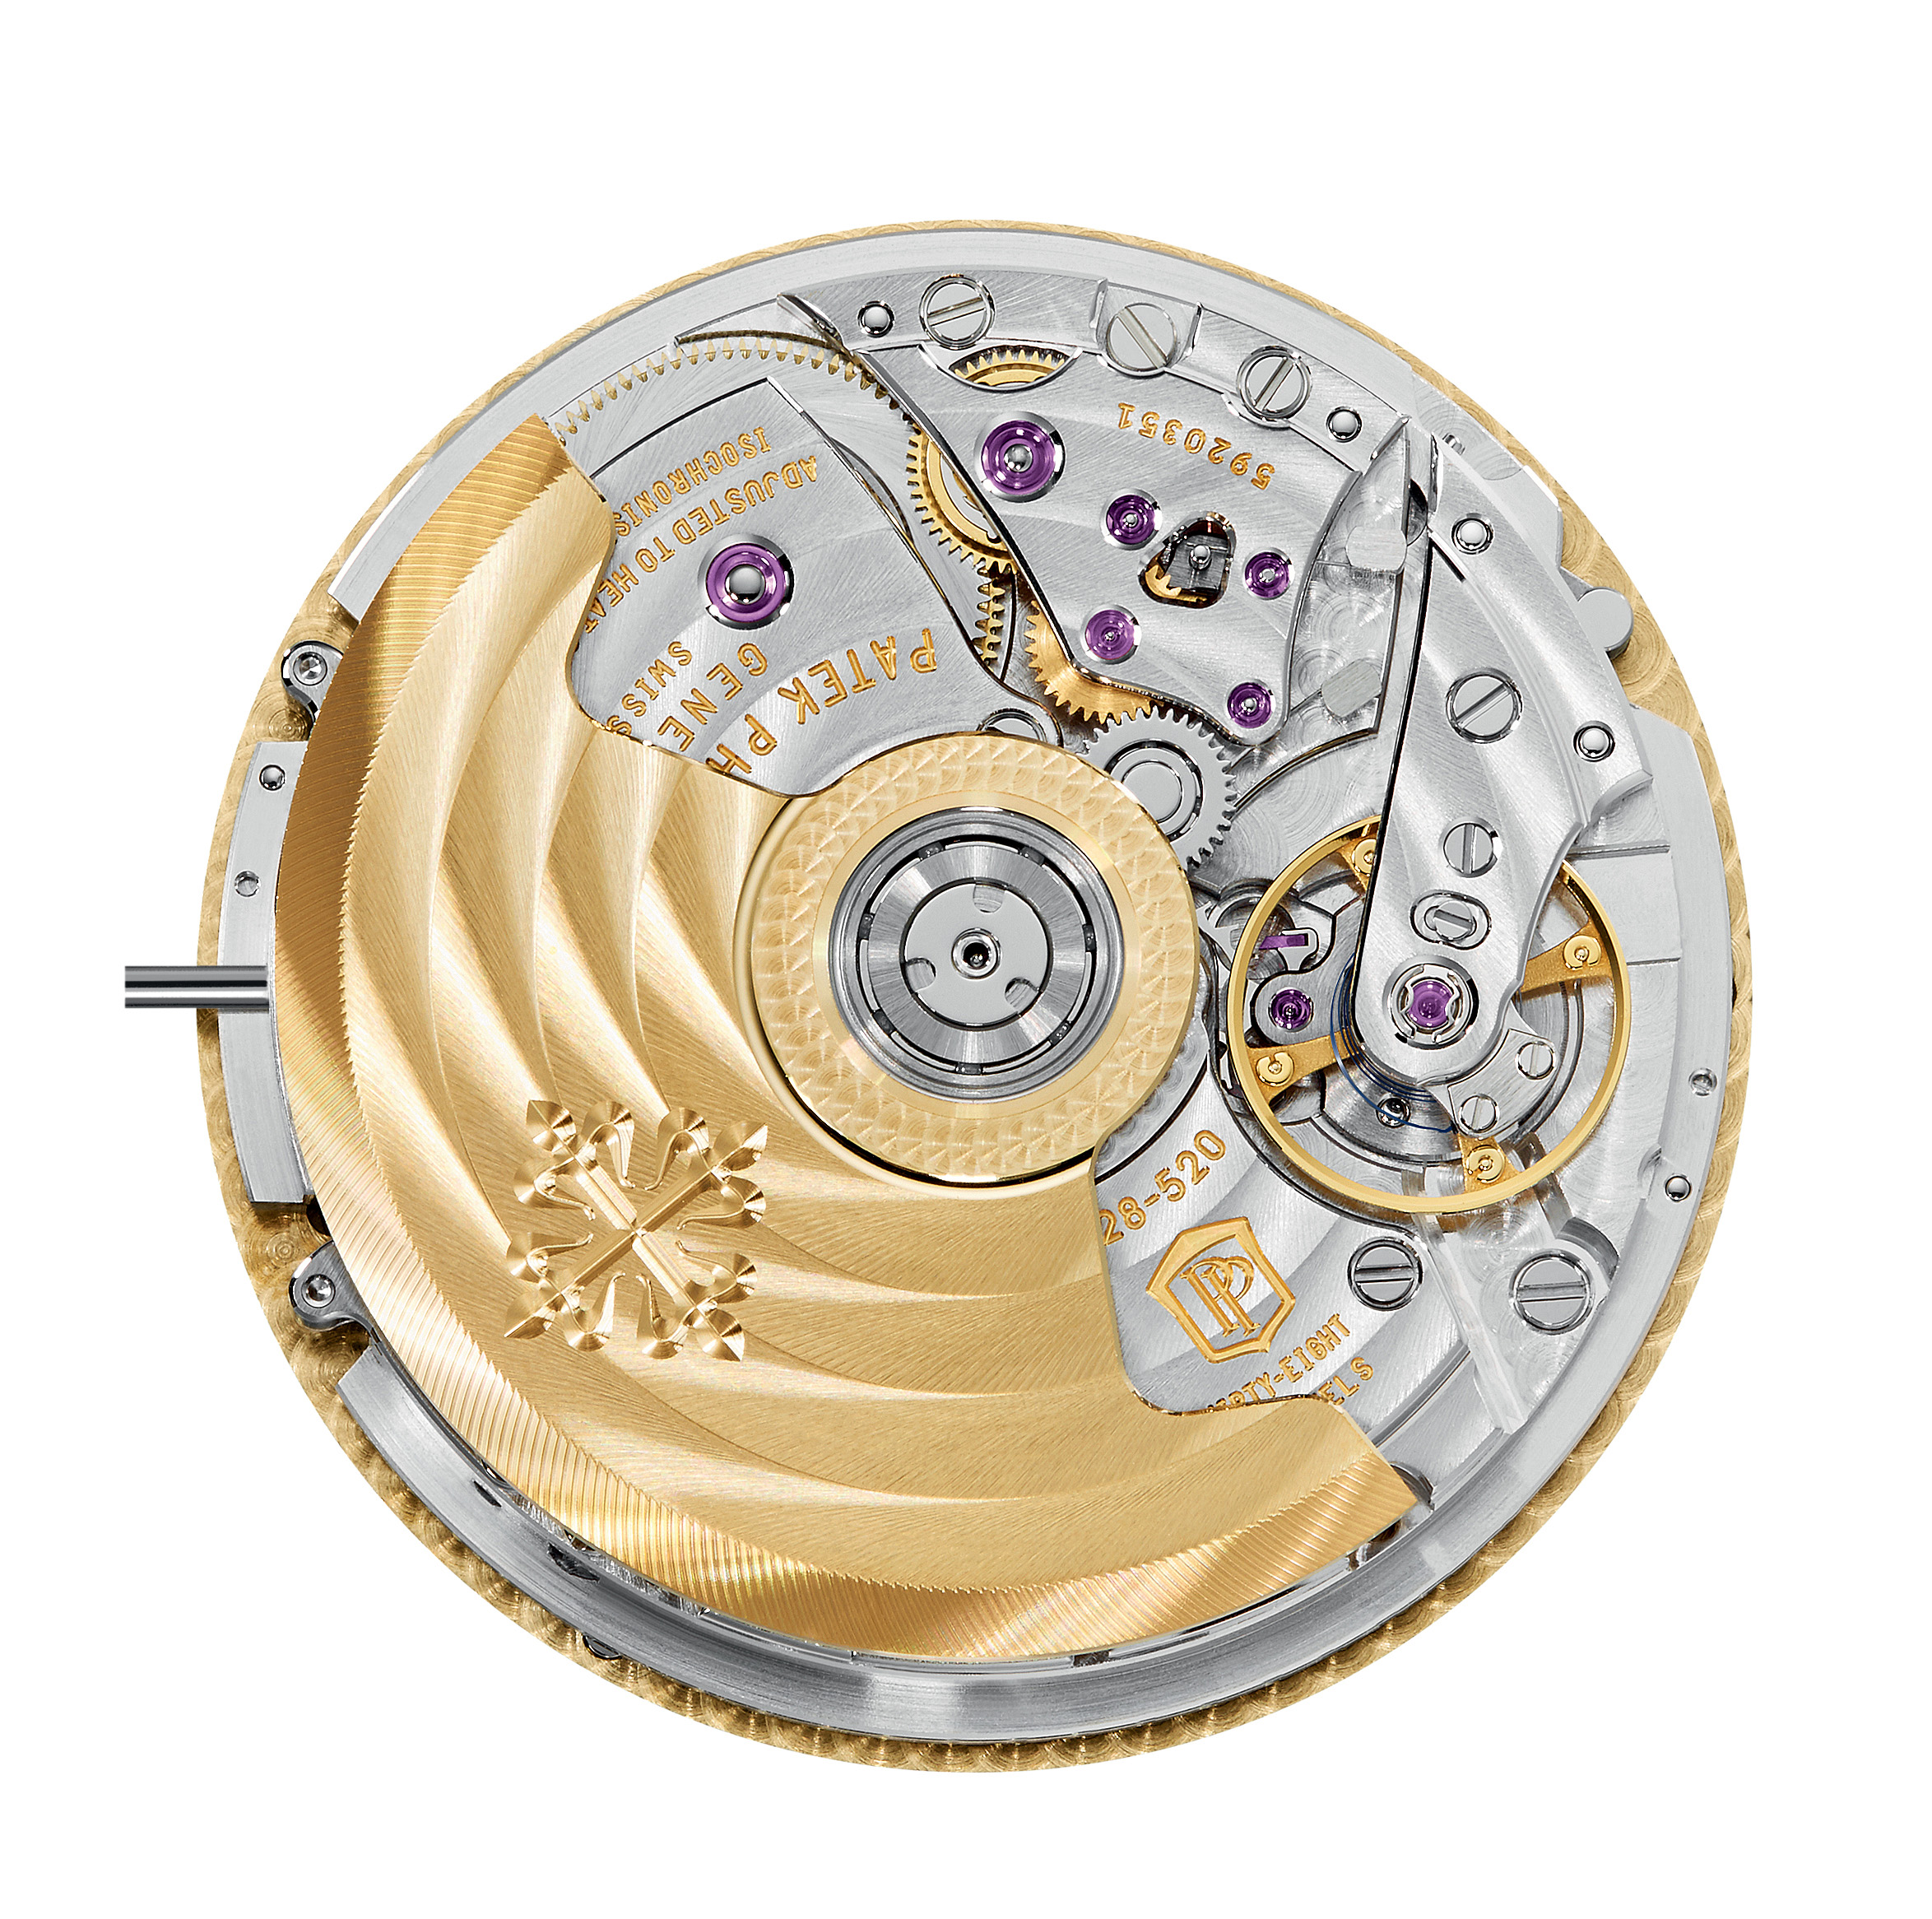 Baselworld 2016: Patek Philippe Live Report and Collection ...